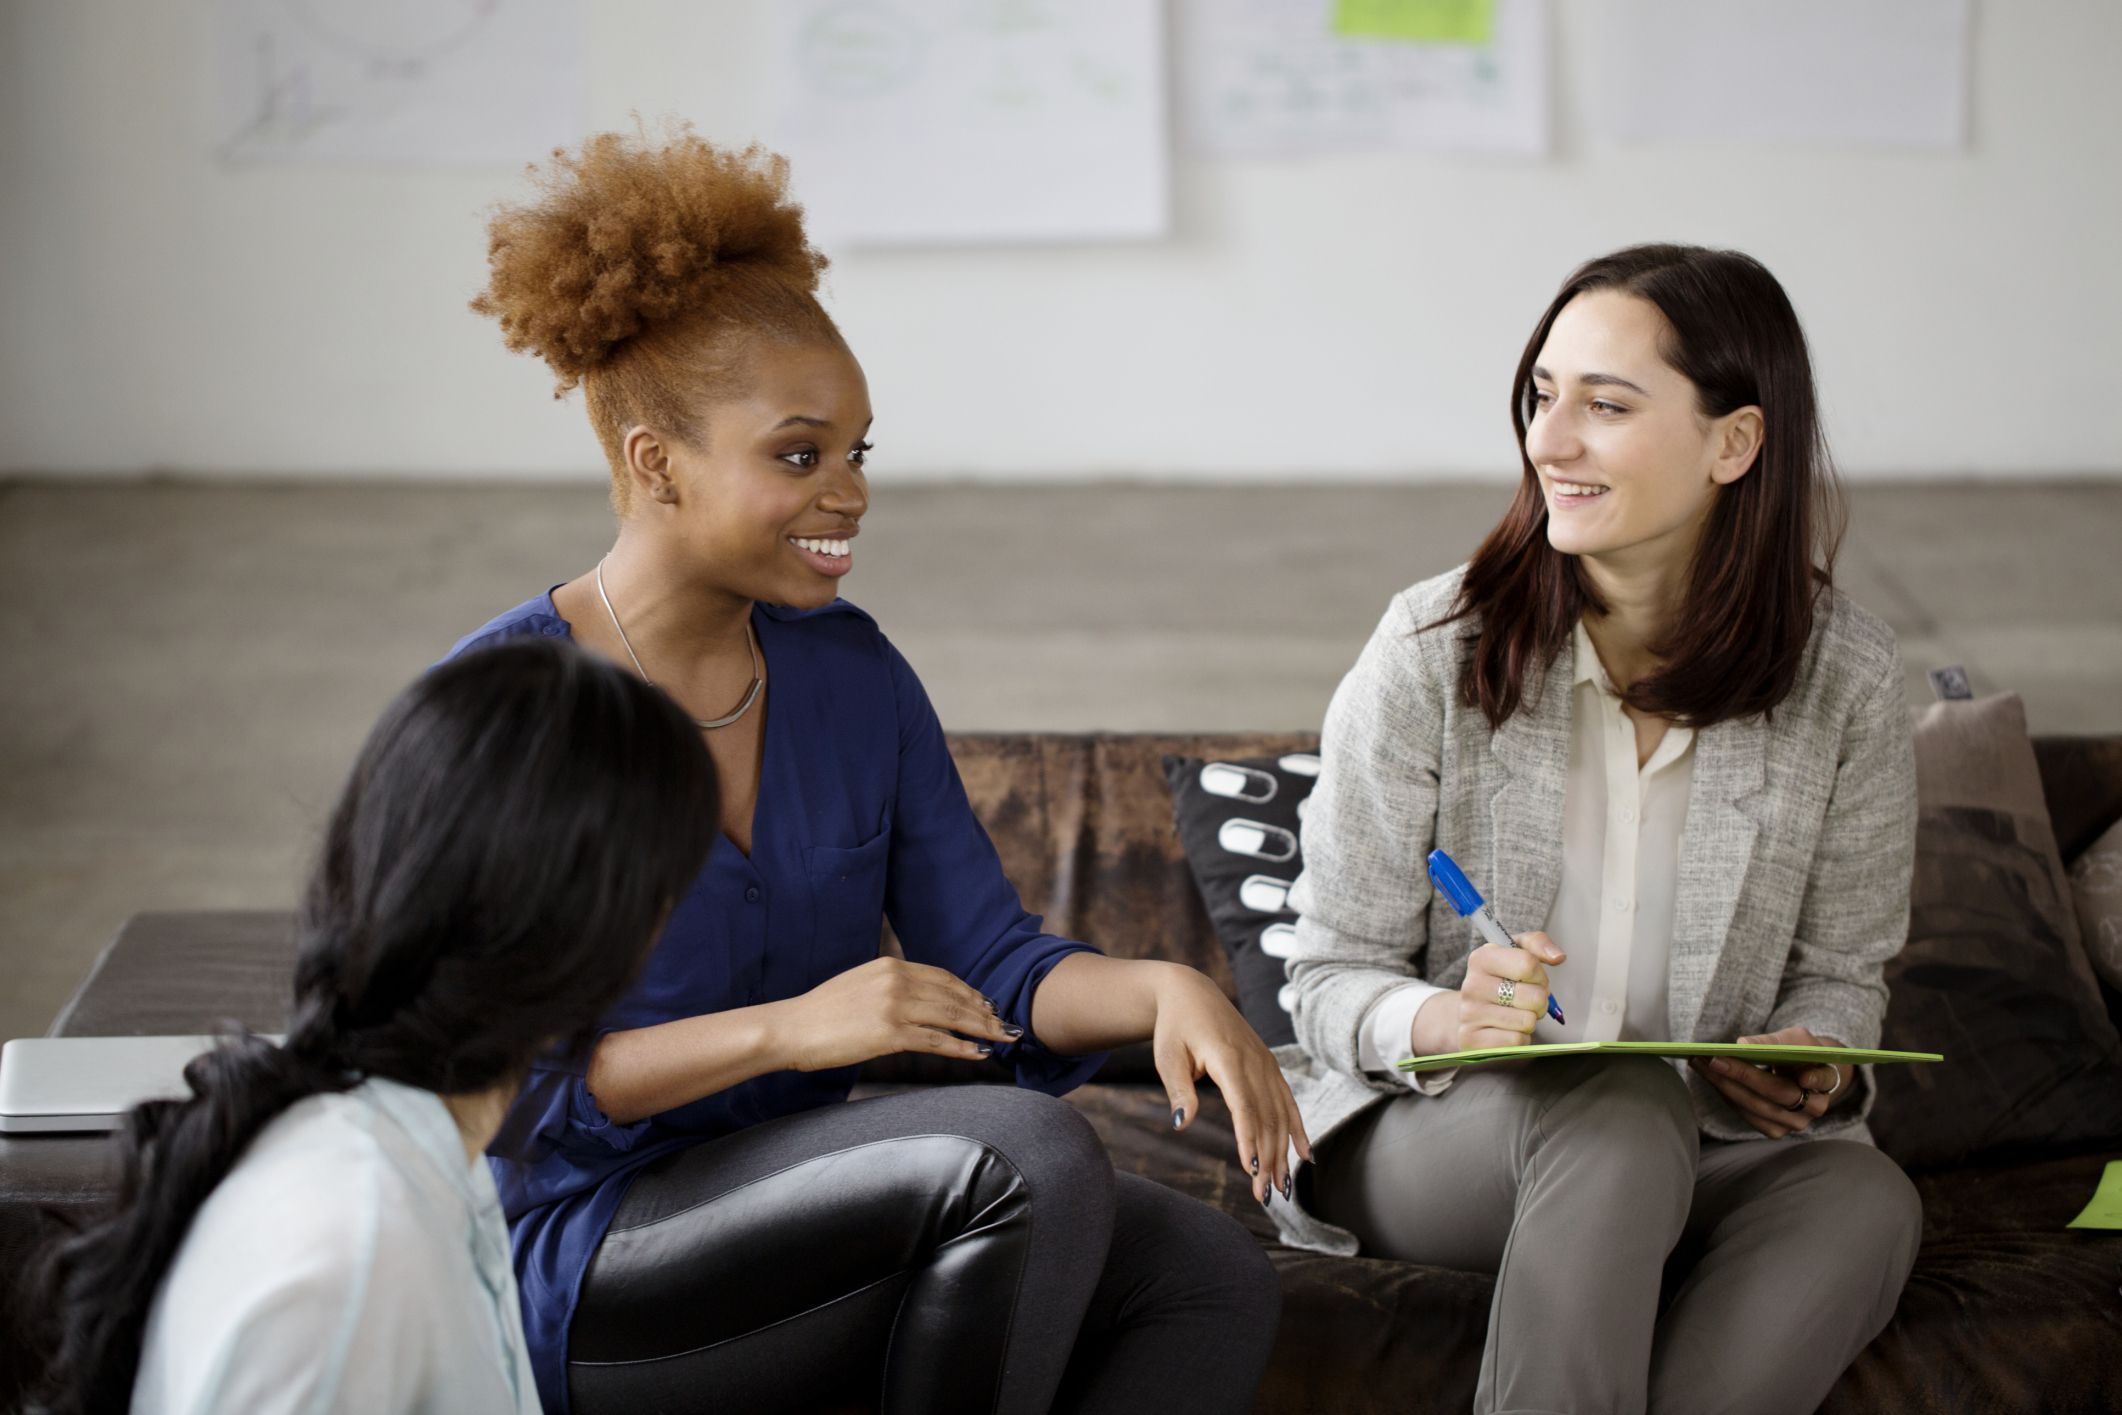 Important Adaptability Skills for Workplace Success